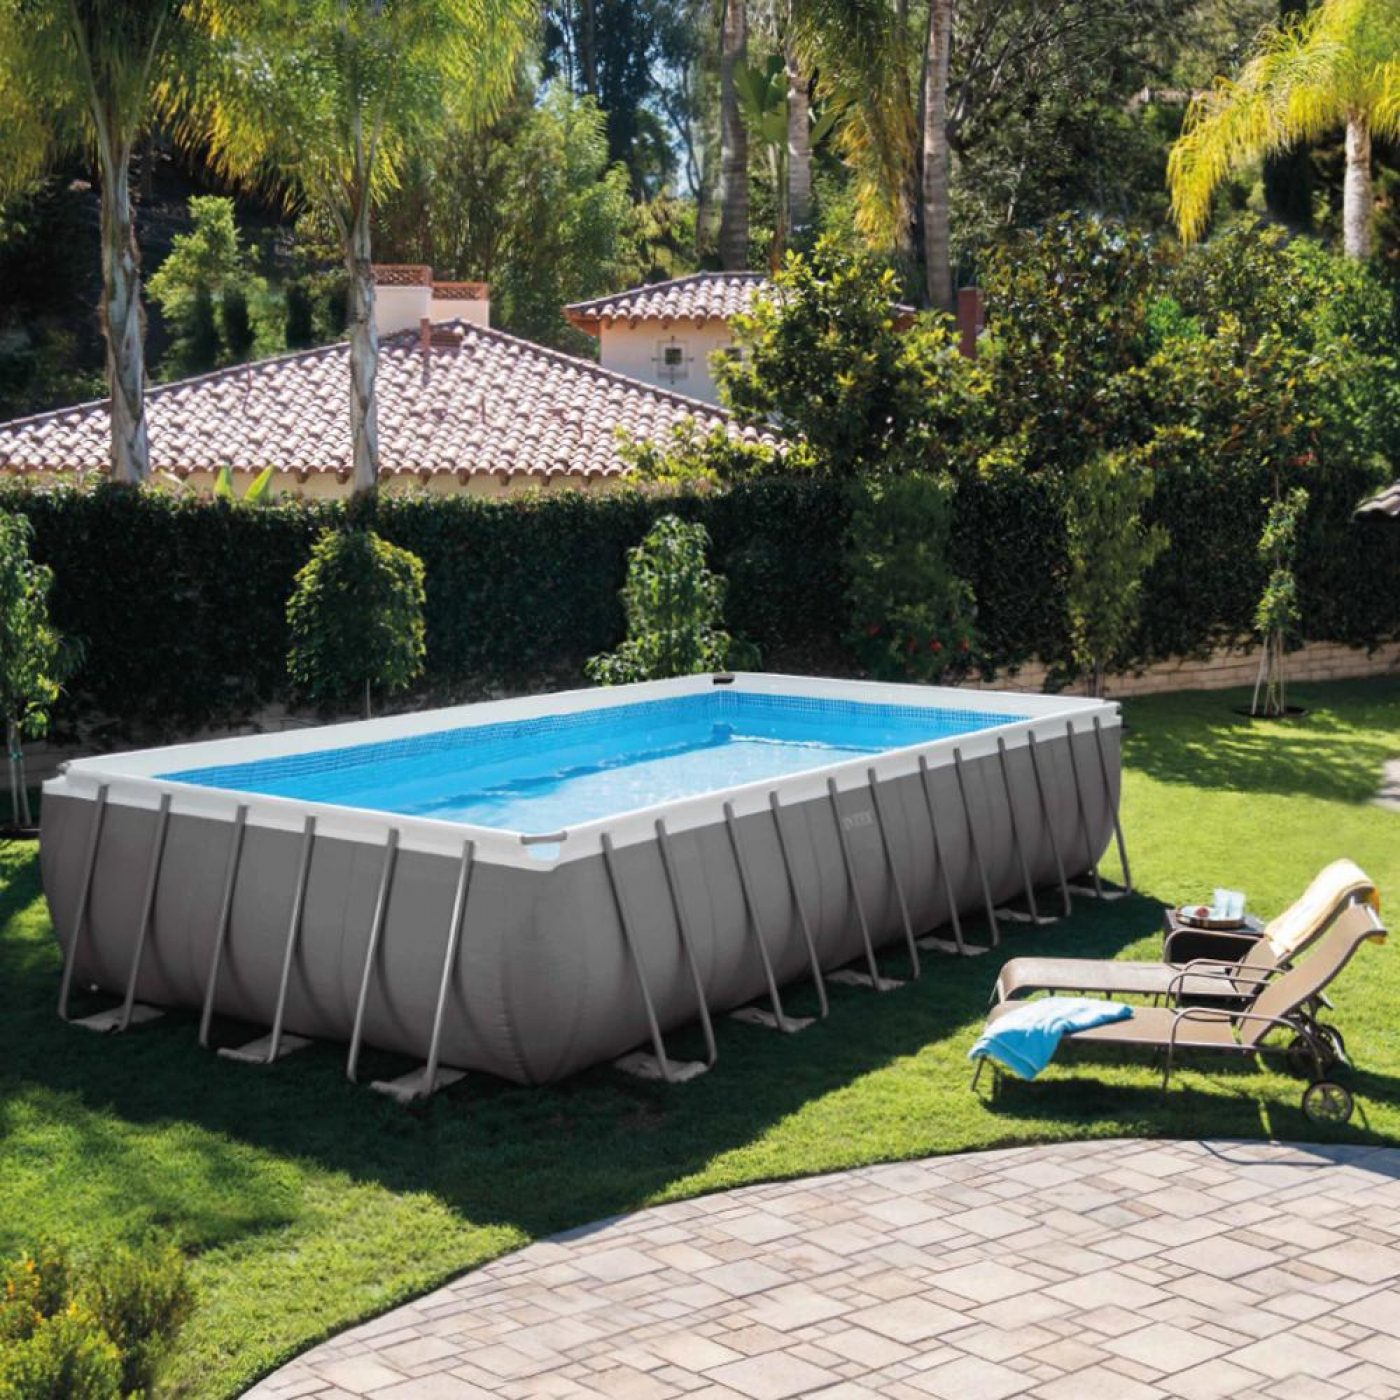 Piscina ultra 732 x 366 x 132 cm con depuradora intex en for Piscinas desmontables intex